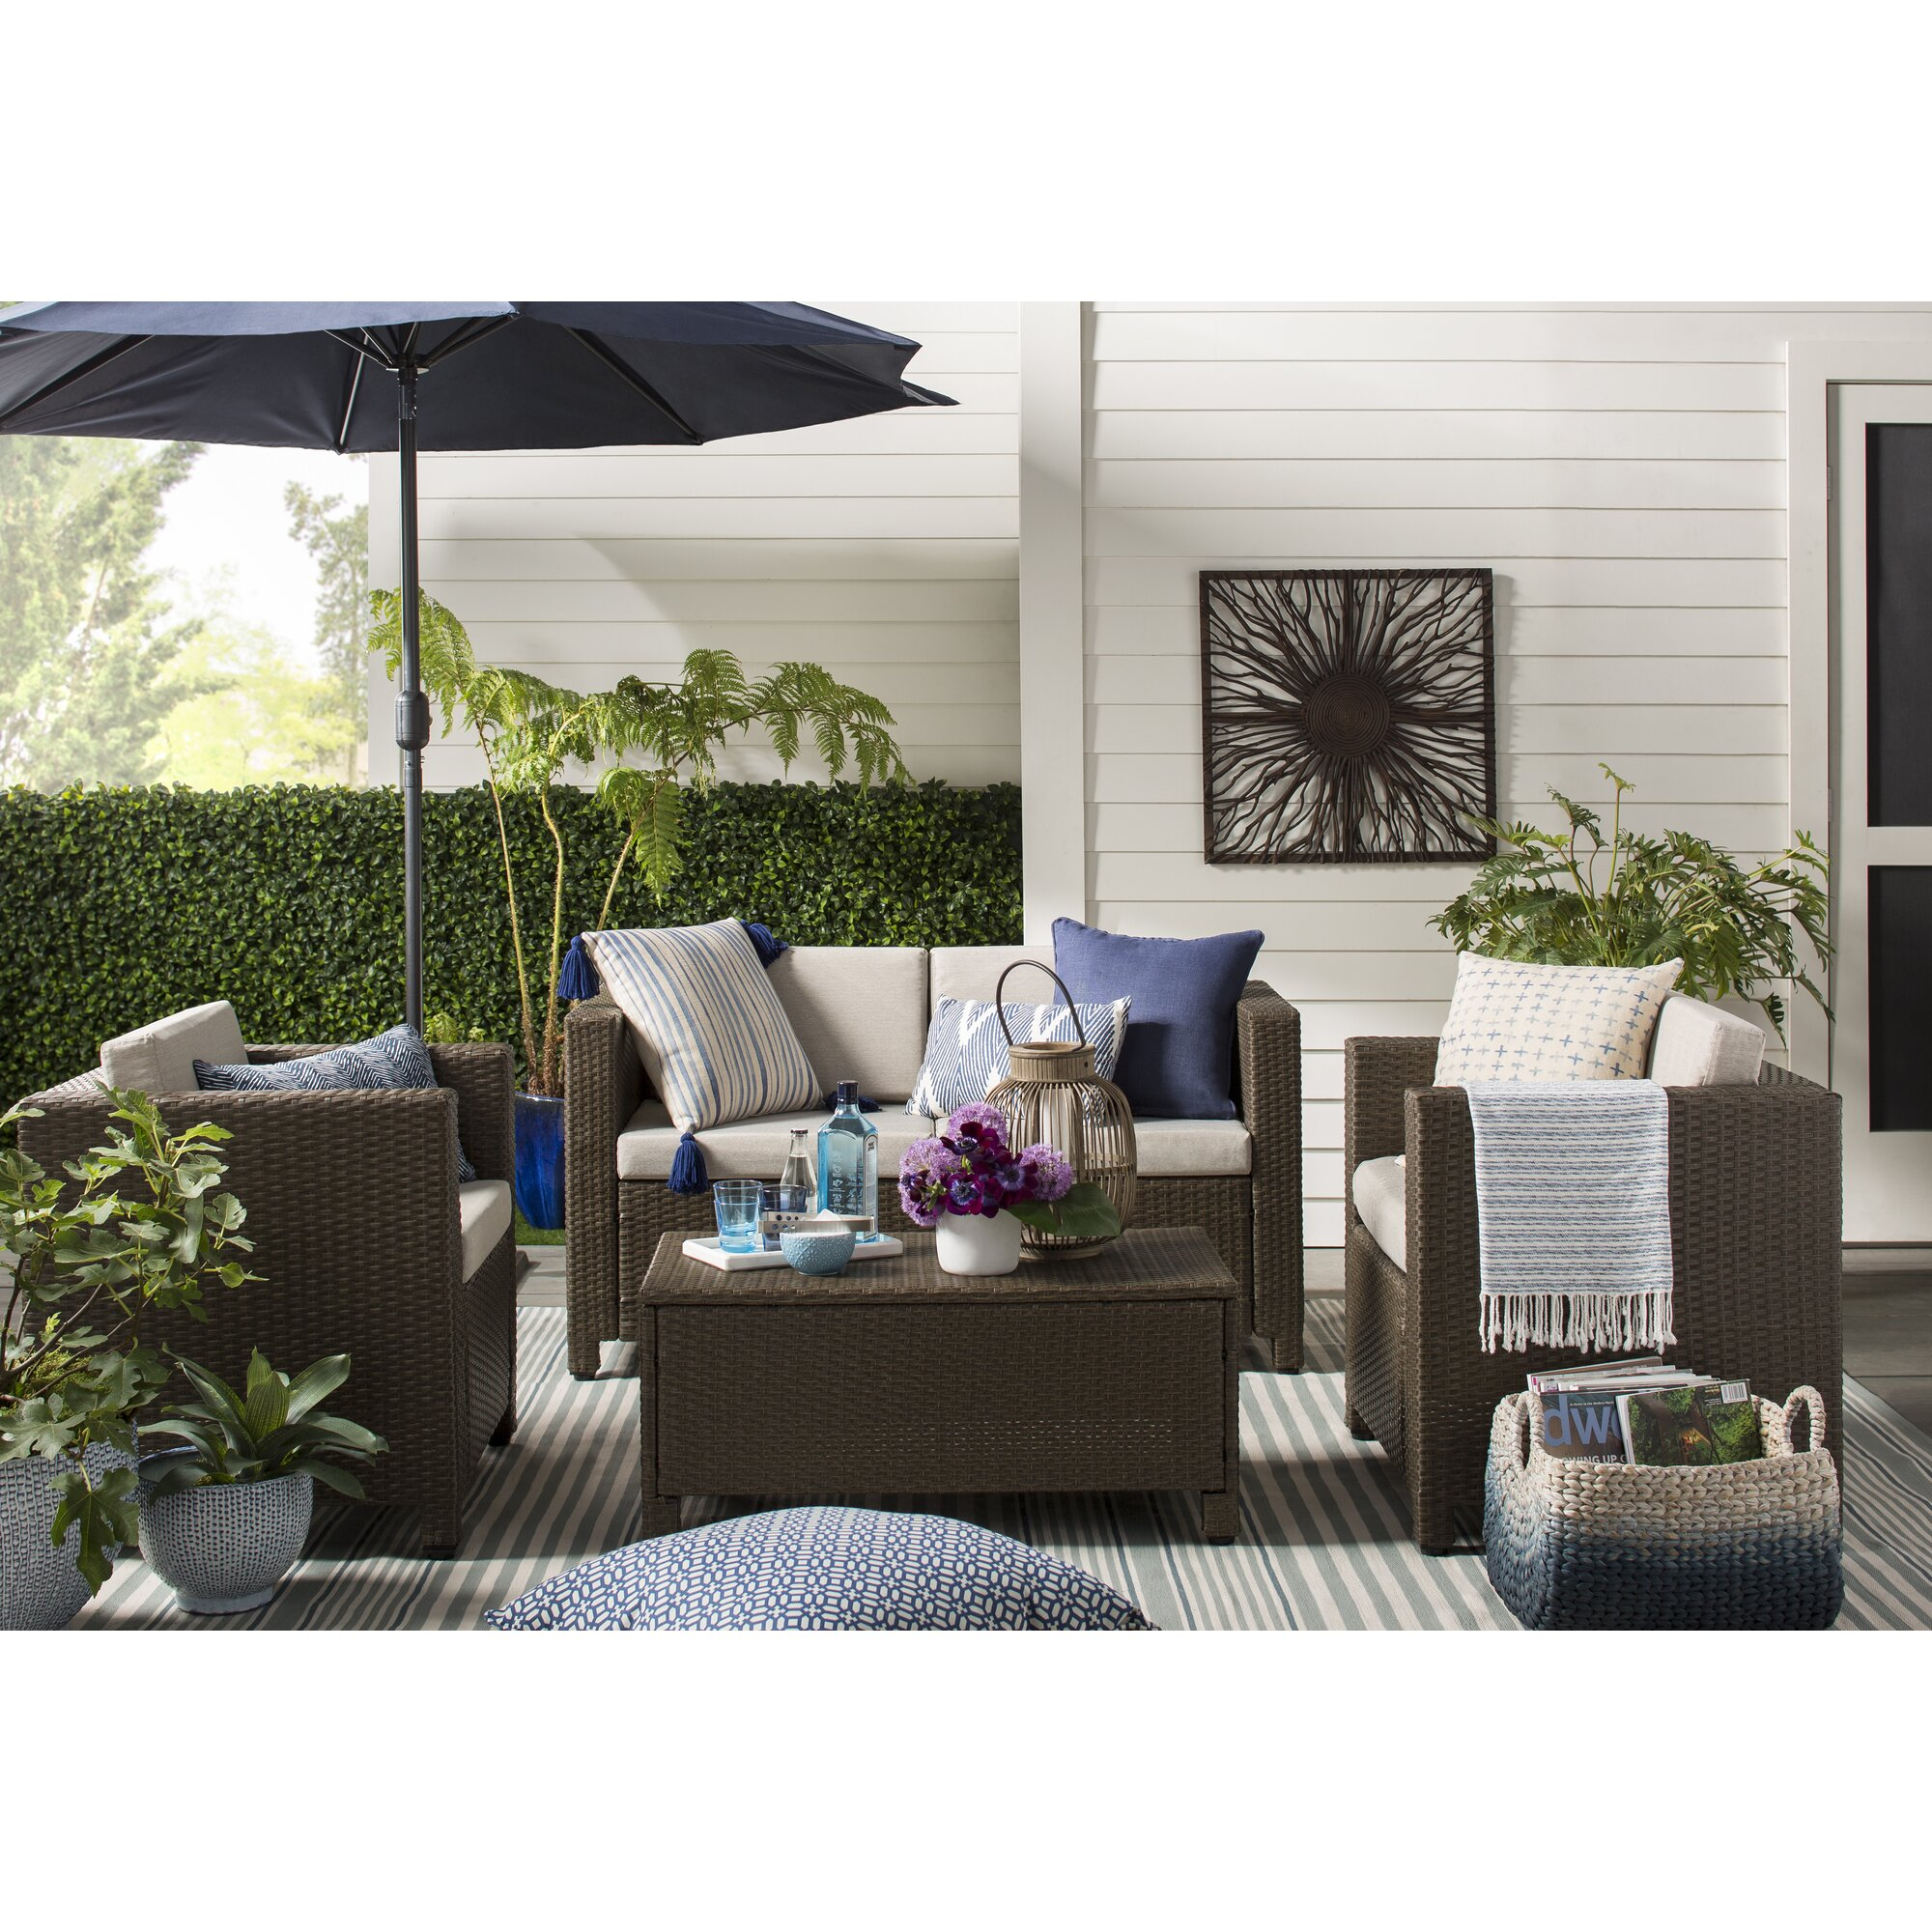 dash and albert rugs hand woven blue white indoor outdoor. Black Bedroom Furniture Sets. Home Design Ideas